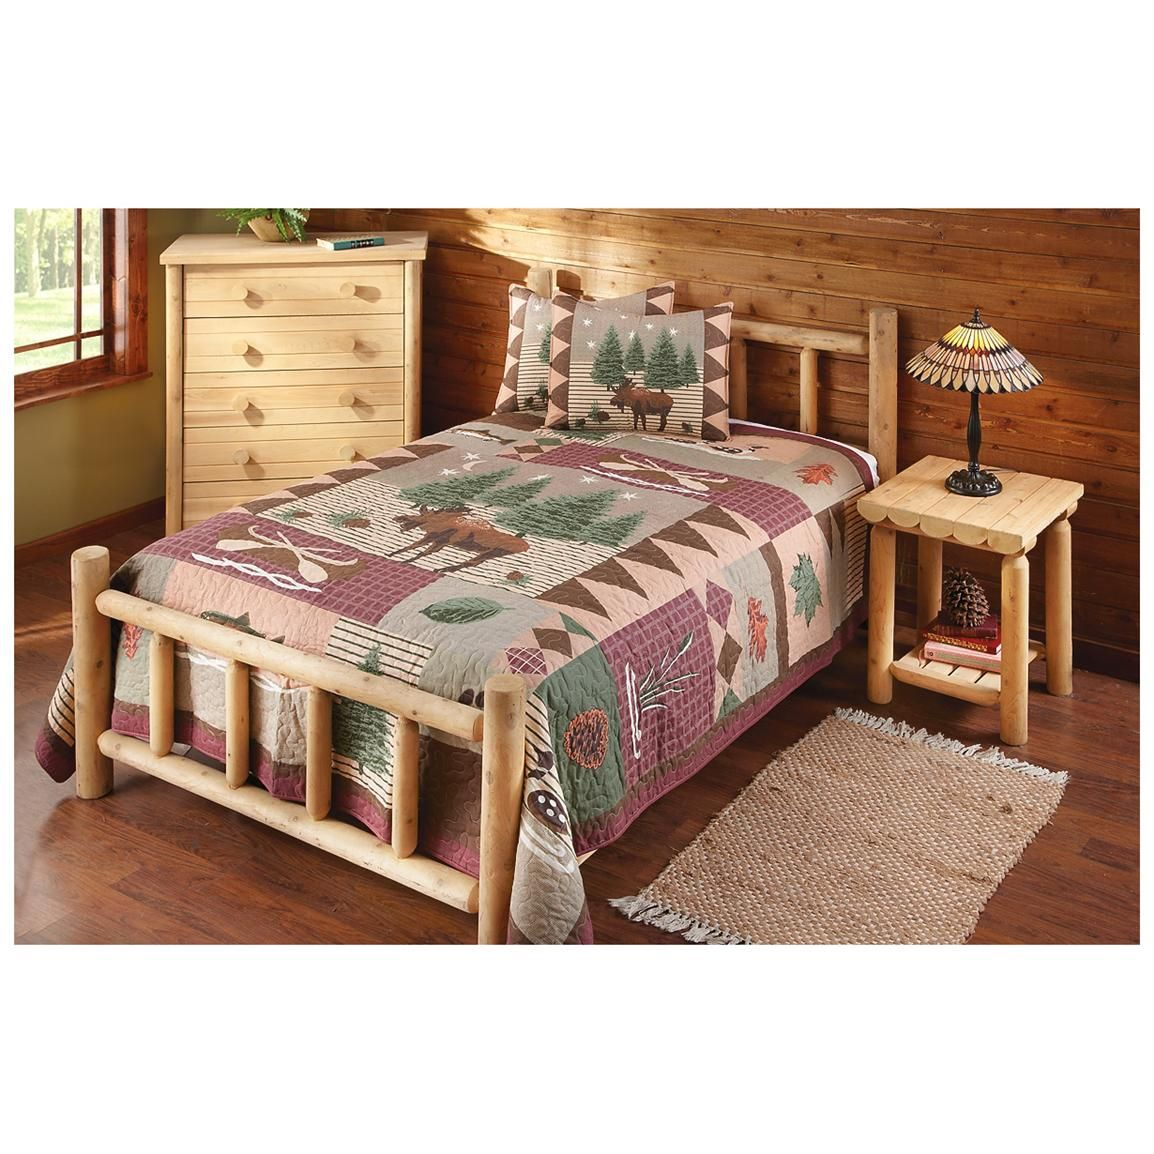 Log Bedroom Sets Beauteous Castlecreek Twin Deluxe Cedar Log Bed  551981 Bedroom Sets Inspiration Design